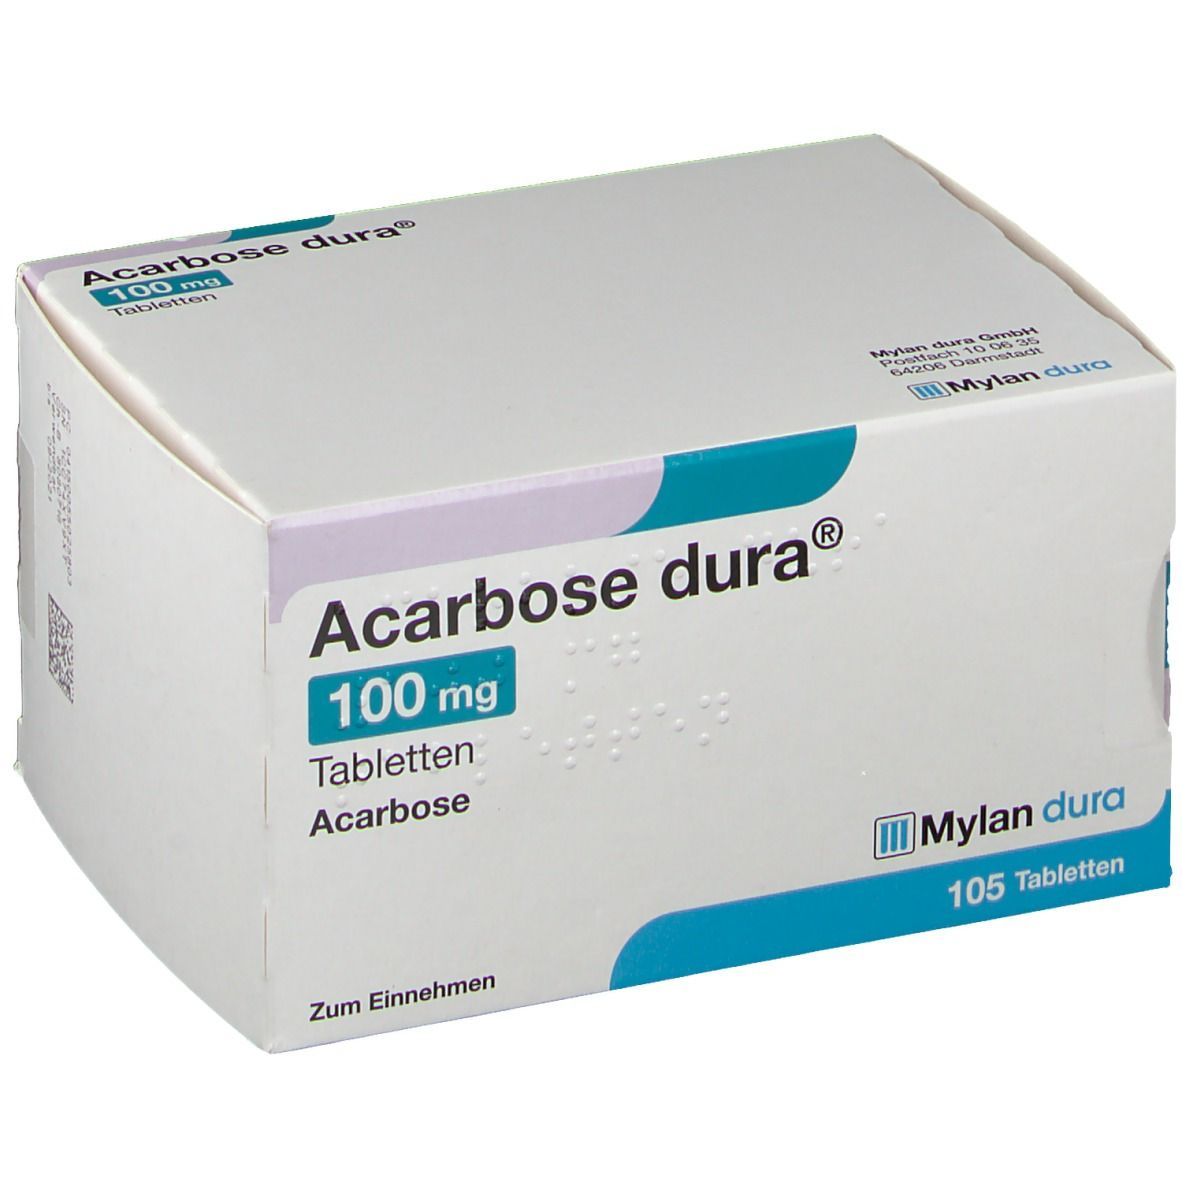 Acarbose dura® 100 mg Tabletten